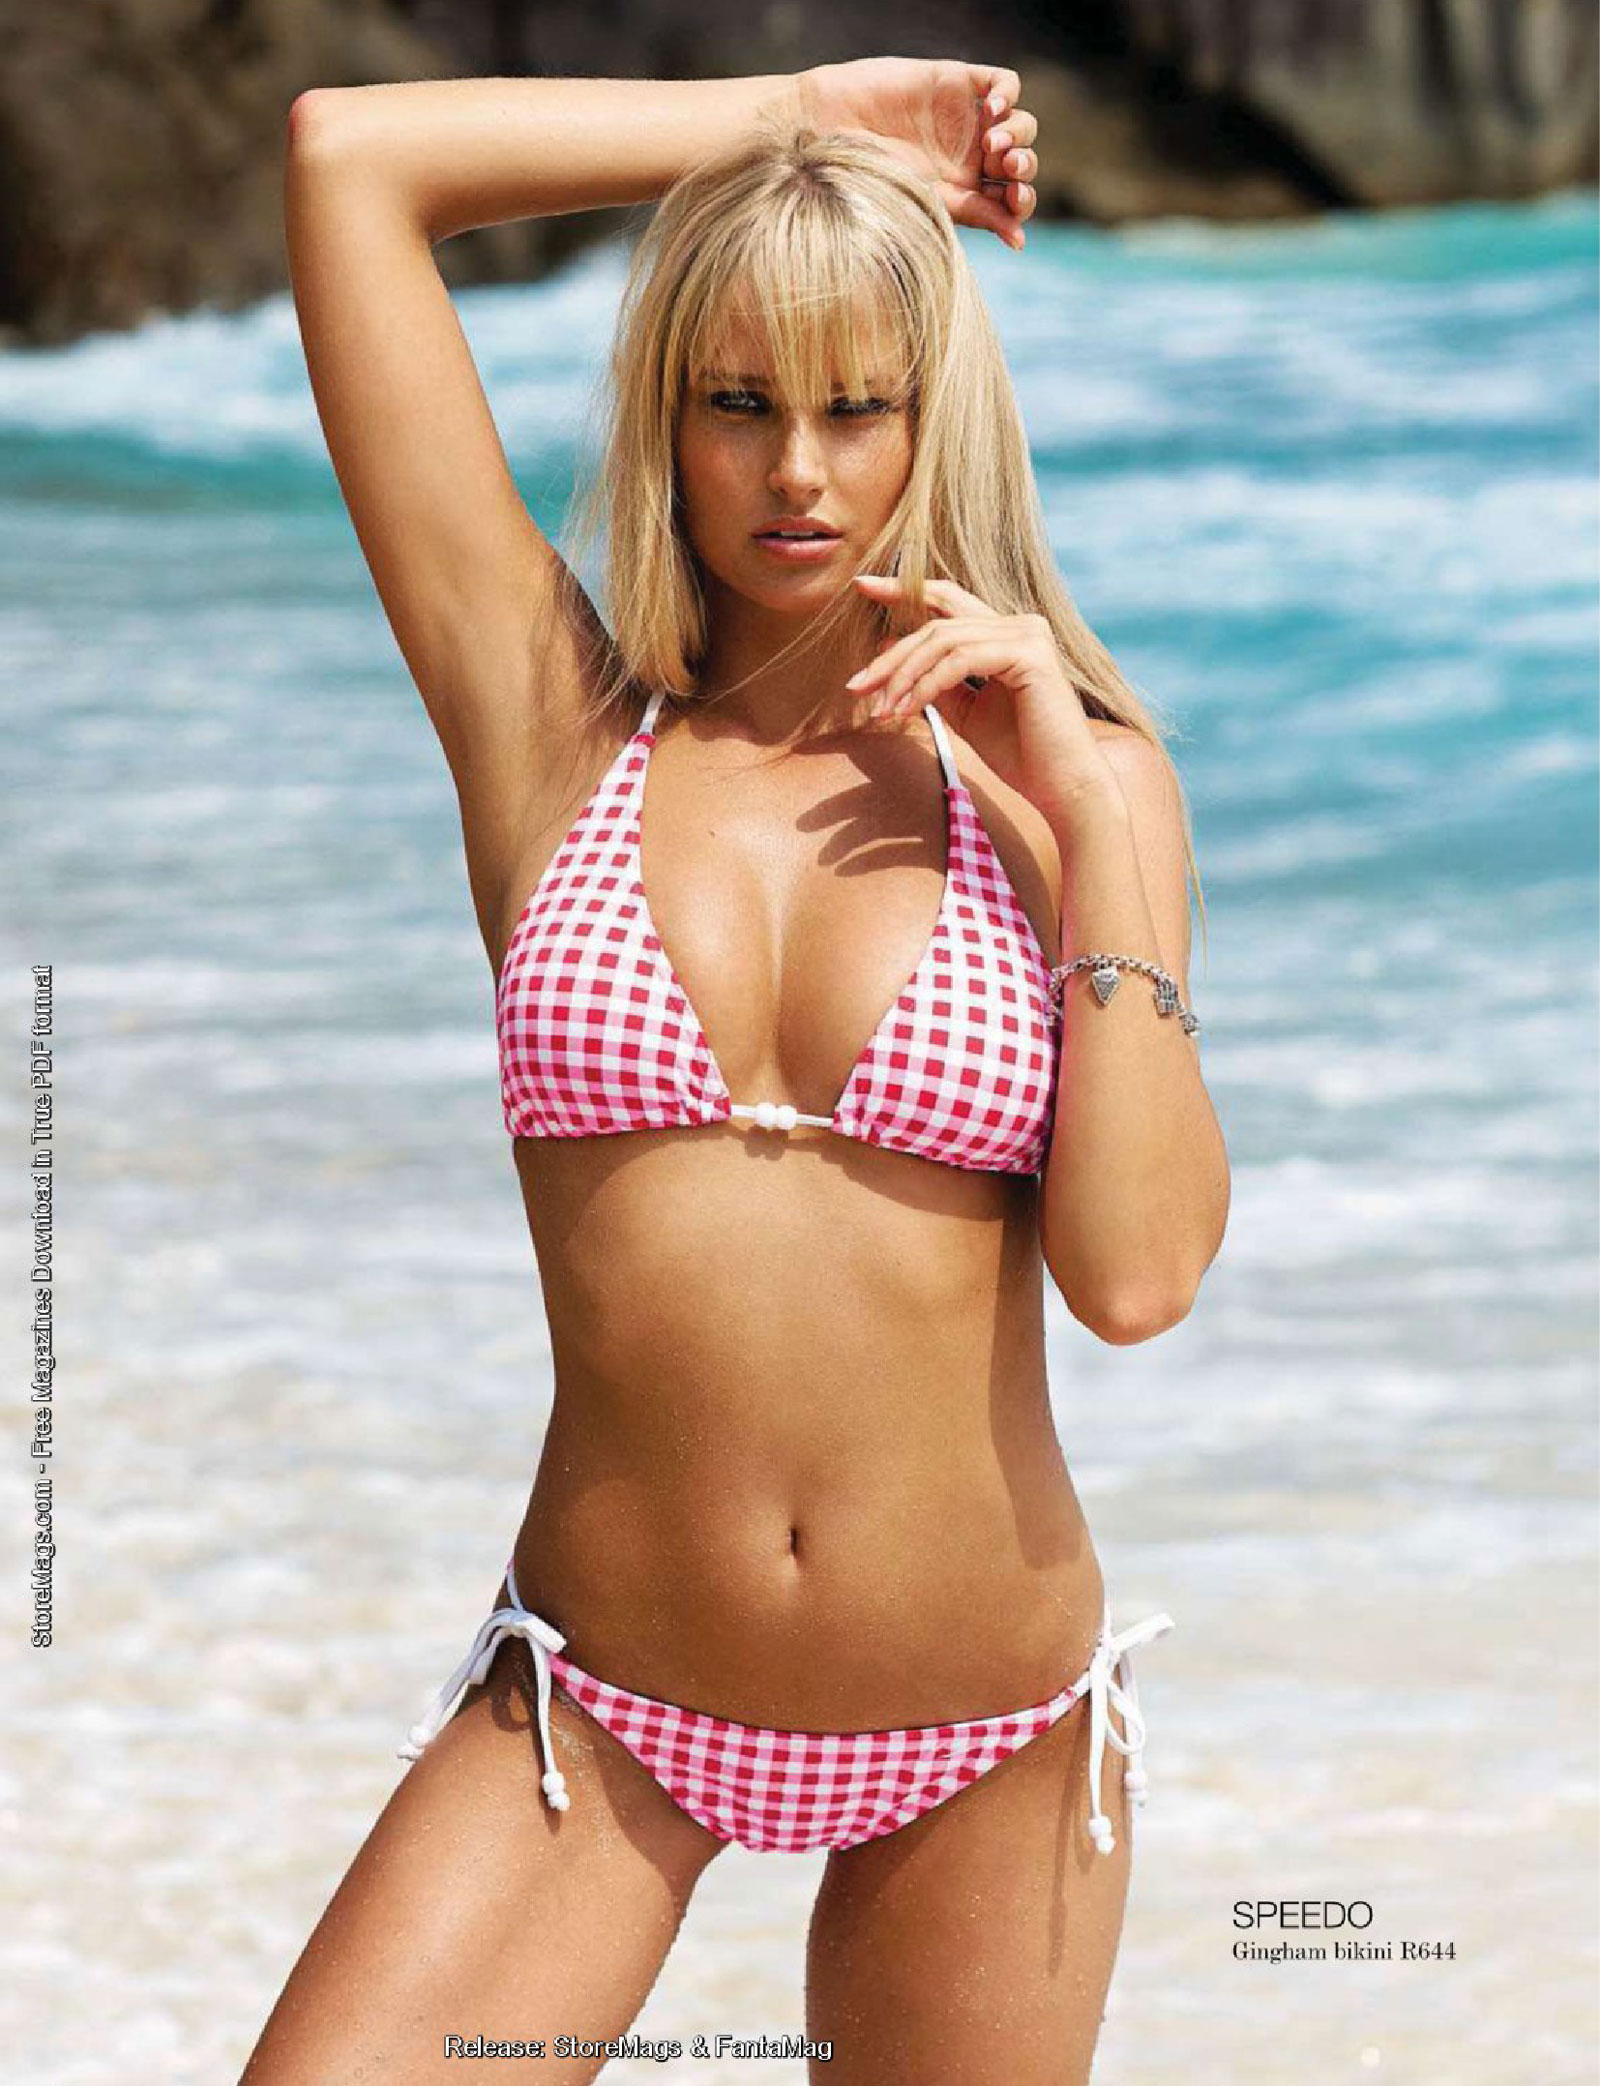 Si Swimsuit 2011 Illustrated swimwear 2011, Sports Illustrated ...